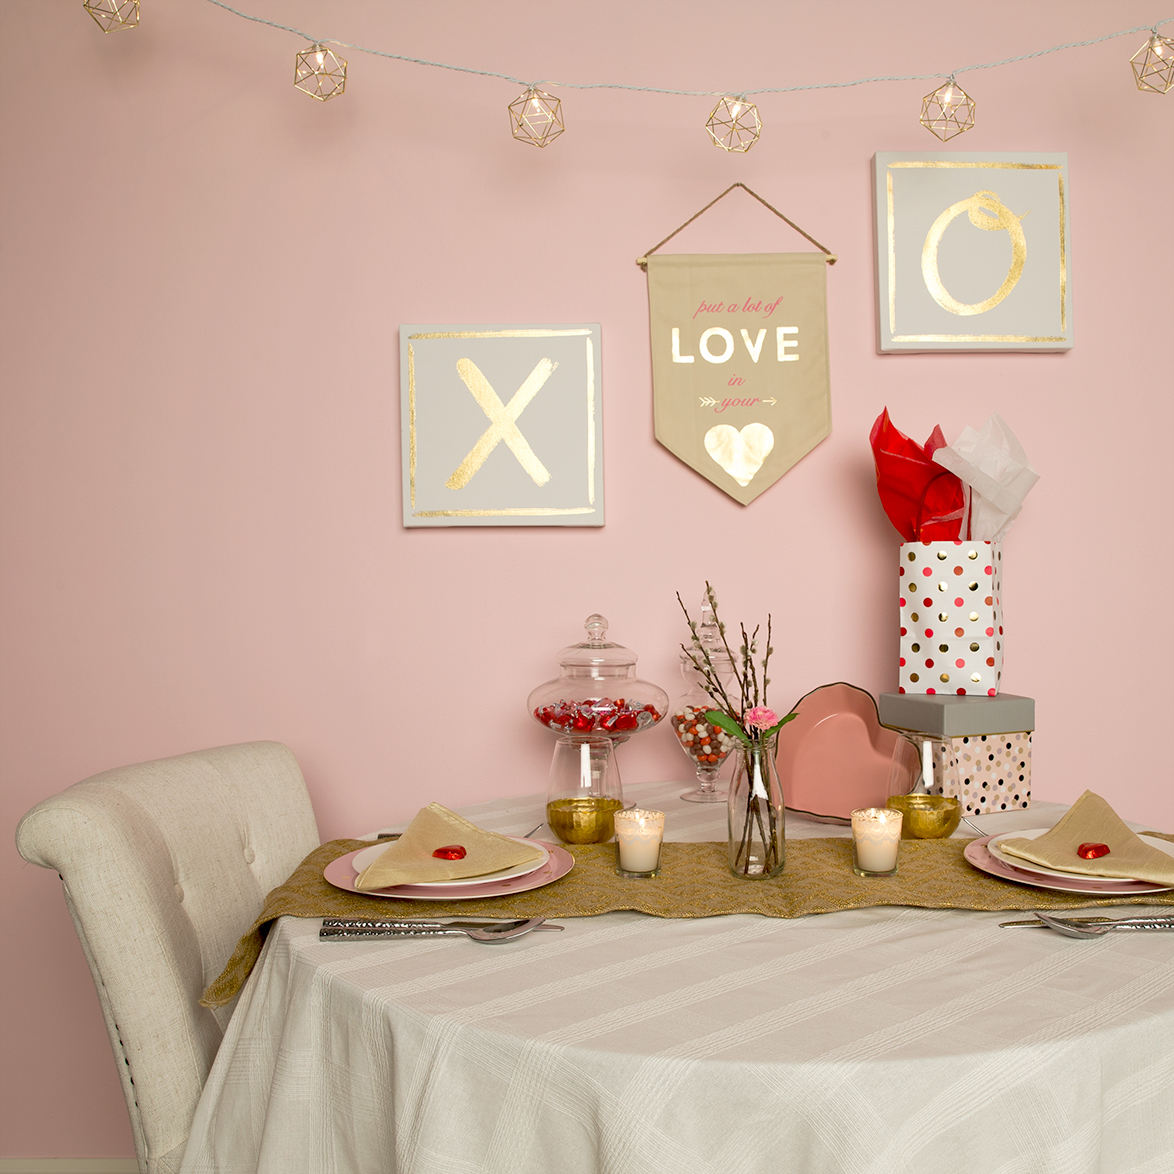 """This image shows a creative way to set up a Valentines Day table setting. The wall is painted in Funhouse which is a muted pink. The wall has a X and O on canvas to symbolize hugs and kisses. There is a sign that says """"put a lot of love in your heart"""" and also hanging overhead is small lights.  The table setting has a large plate, small plate, napkin and two cups.  There are chocolates on the table as well and two gifts.  To finalize the look is a flower at the middle of the table and two candles."""